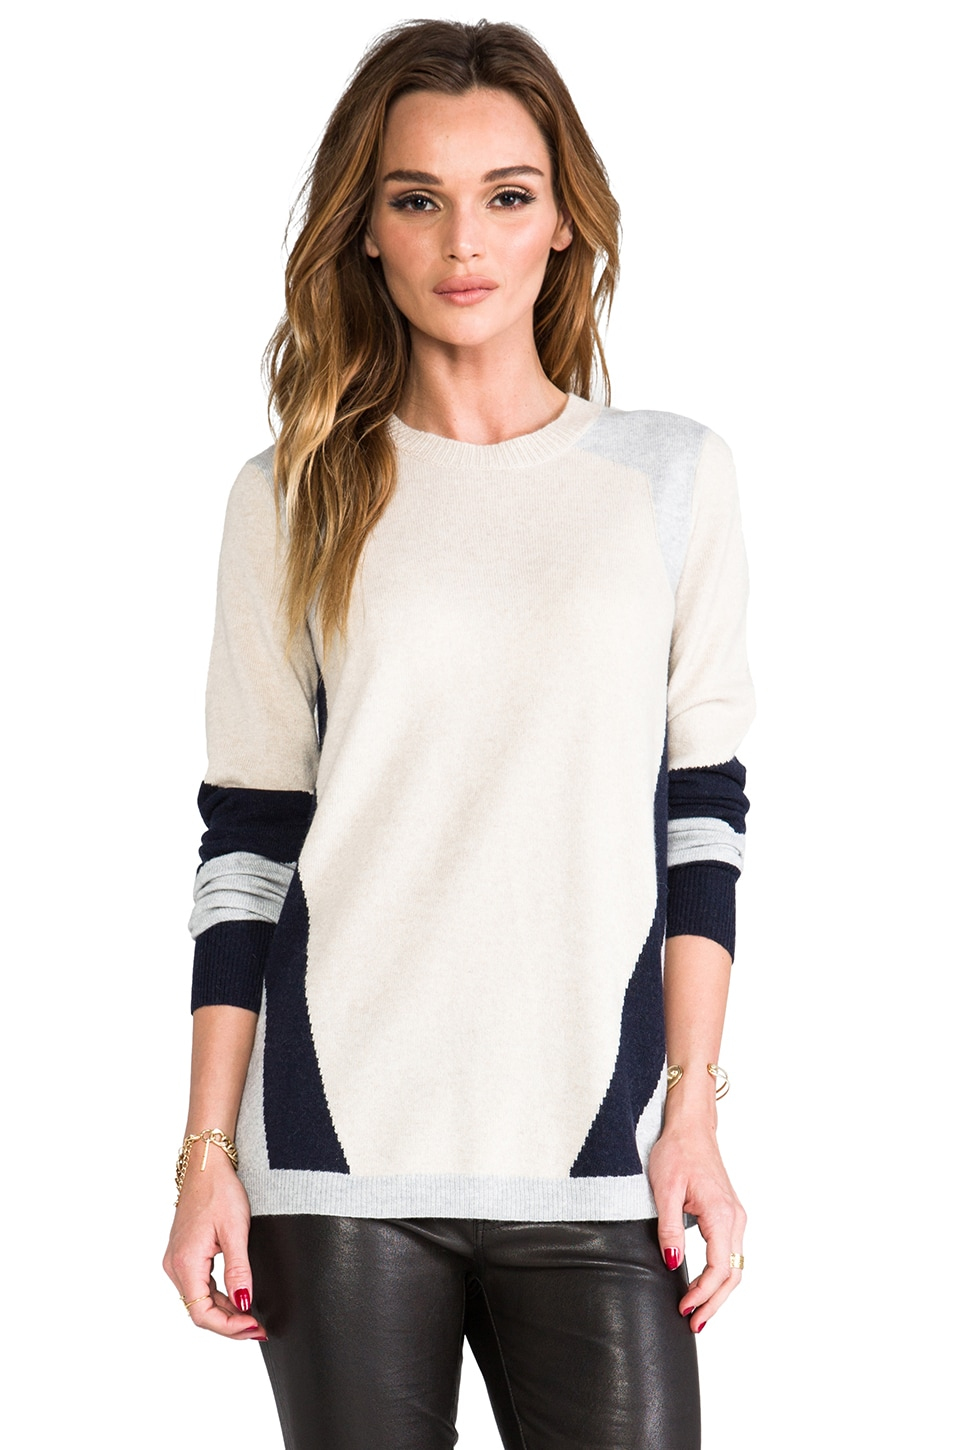 Rebecca Taylor Colorblocked Intarsia Sweater in Oatmeal Combo